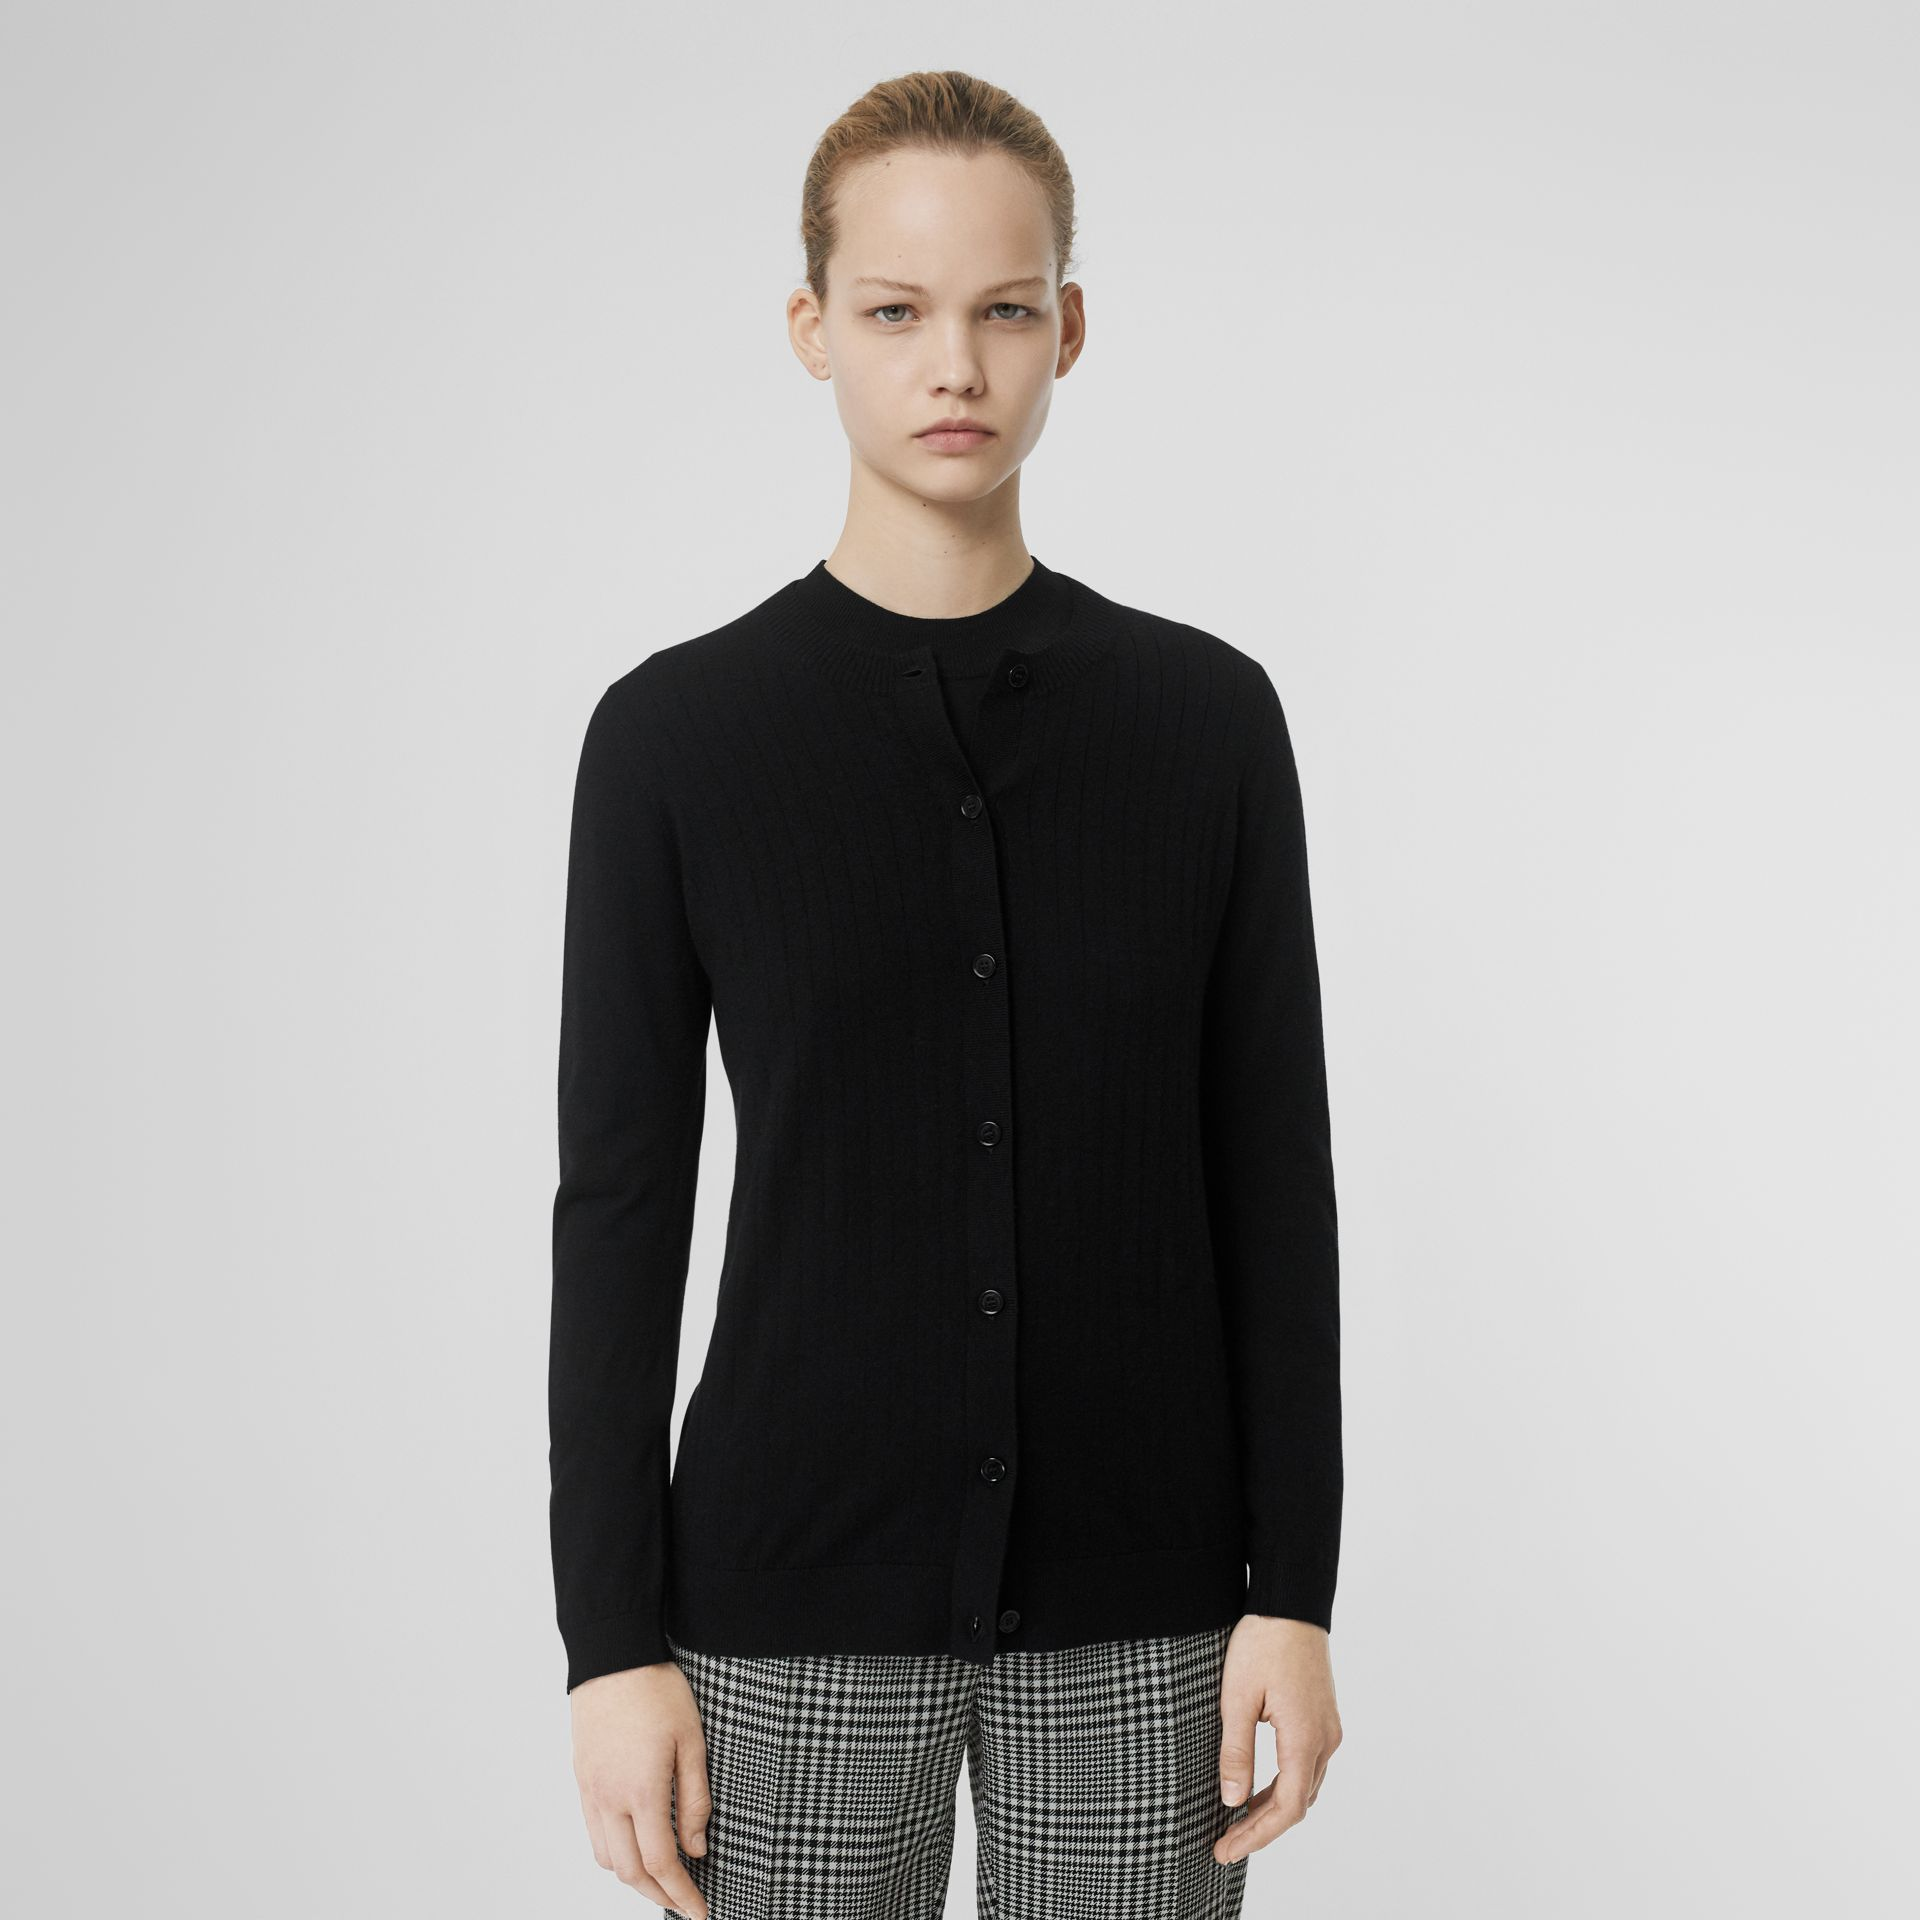 Rib Knit Cashmere Cardigan in Black - Women | Burberry Australia - gallery image 5